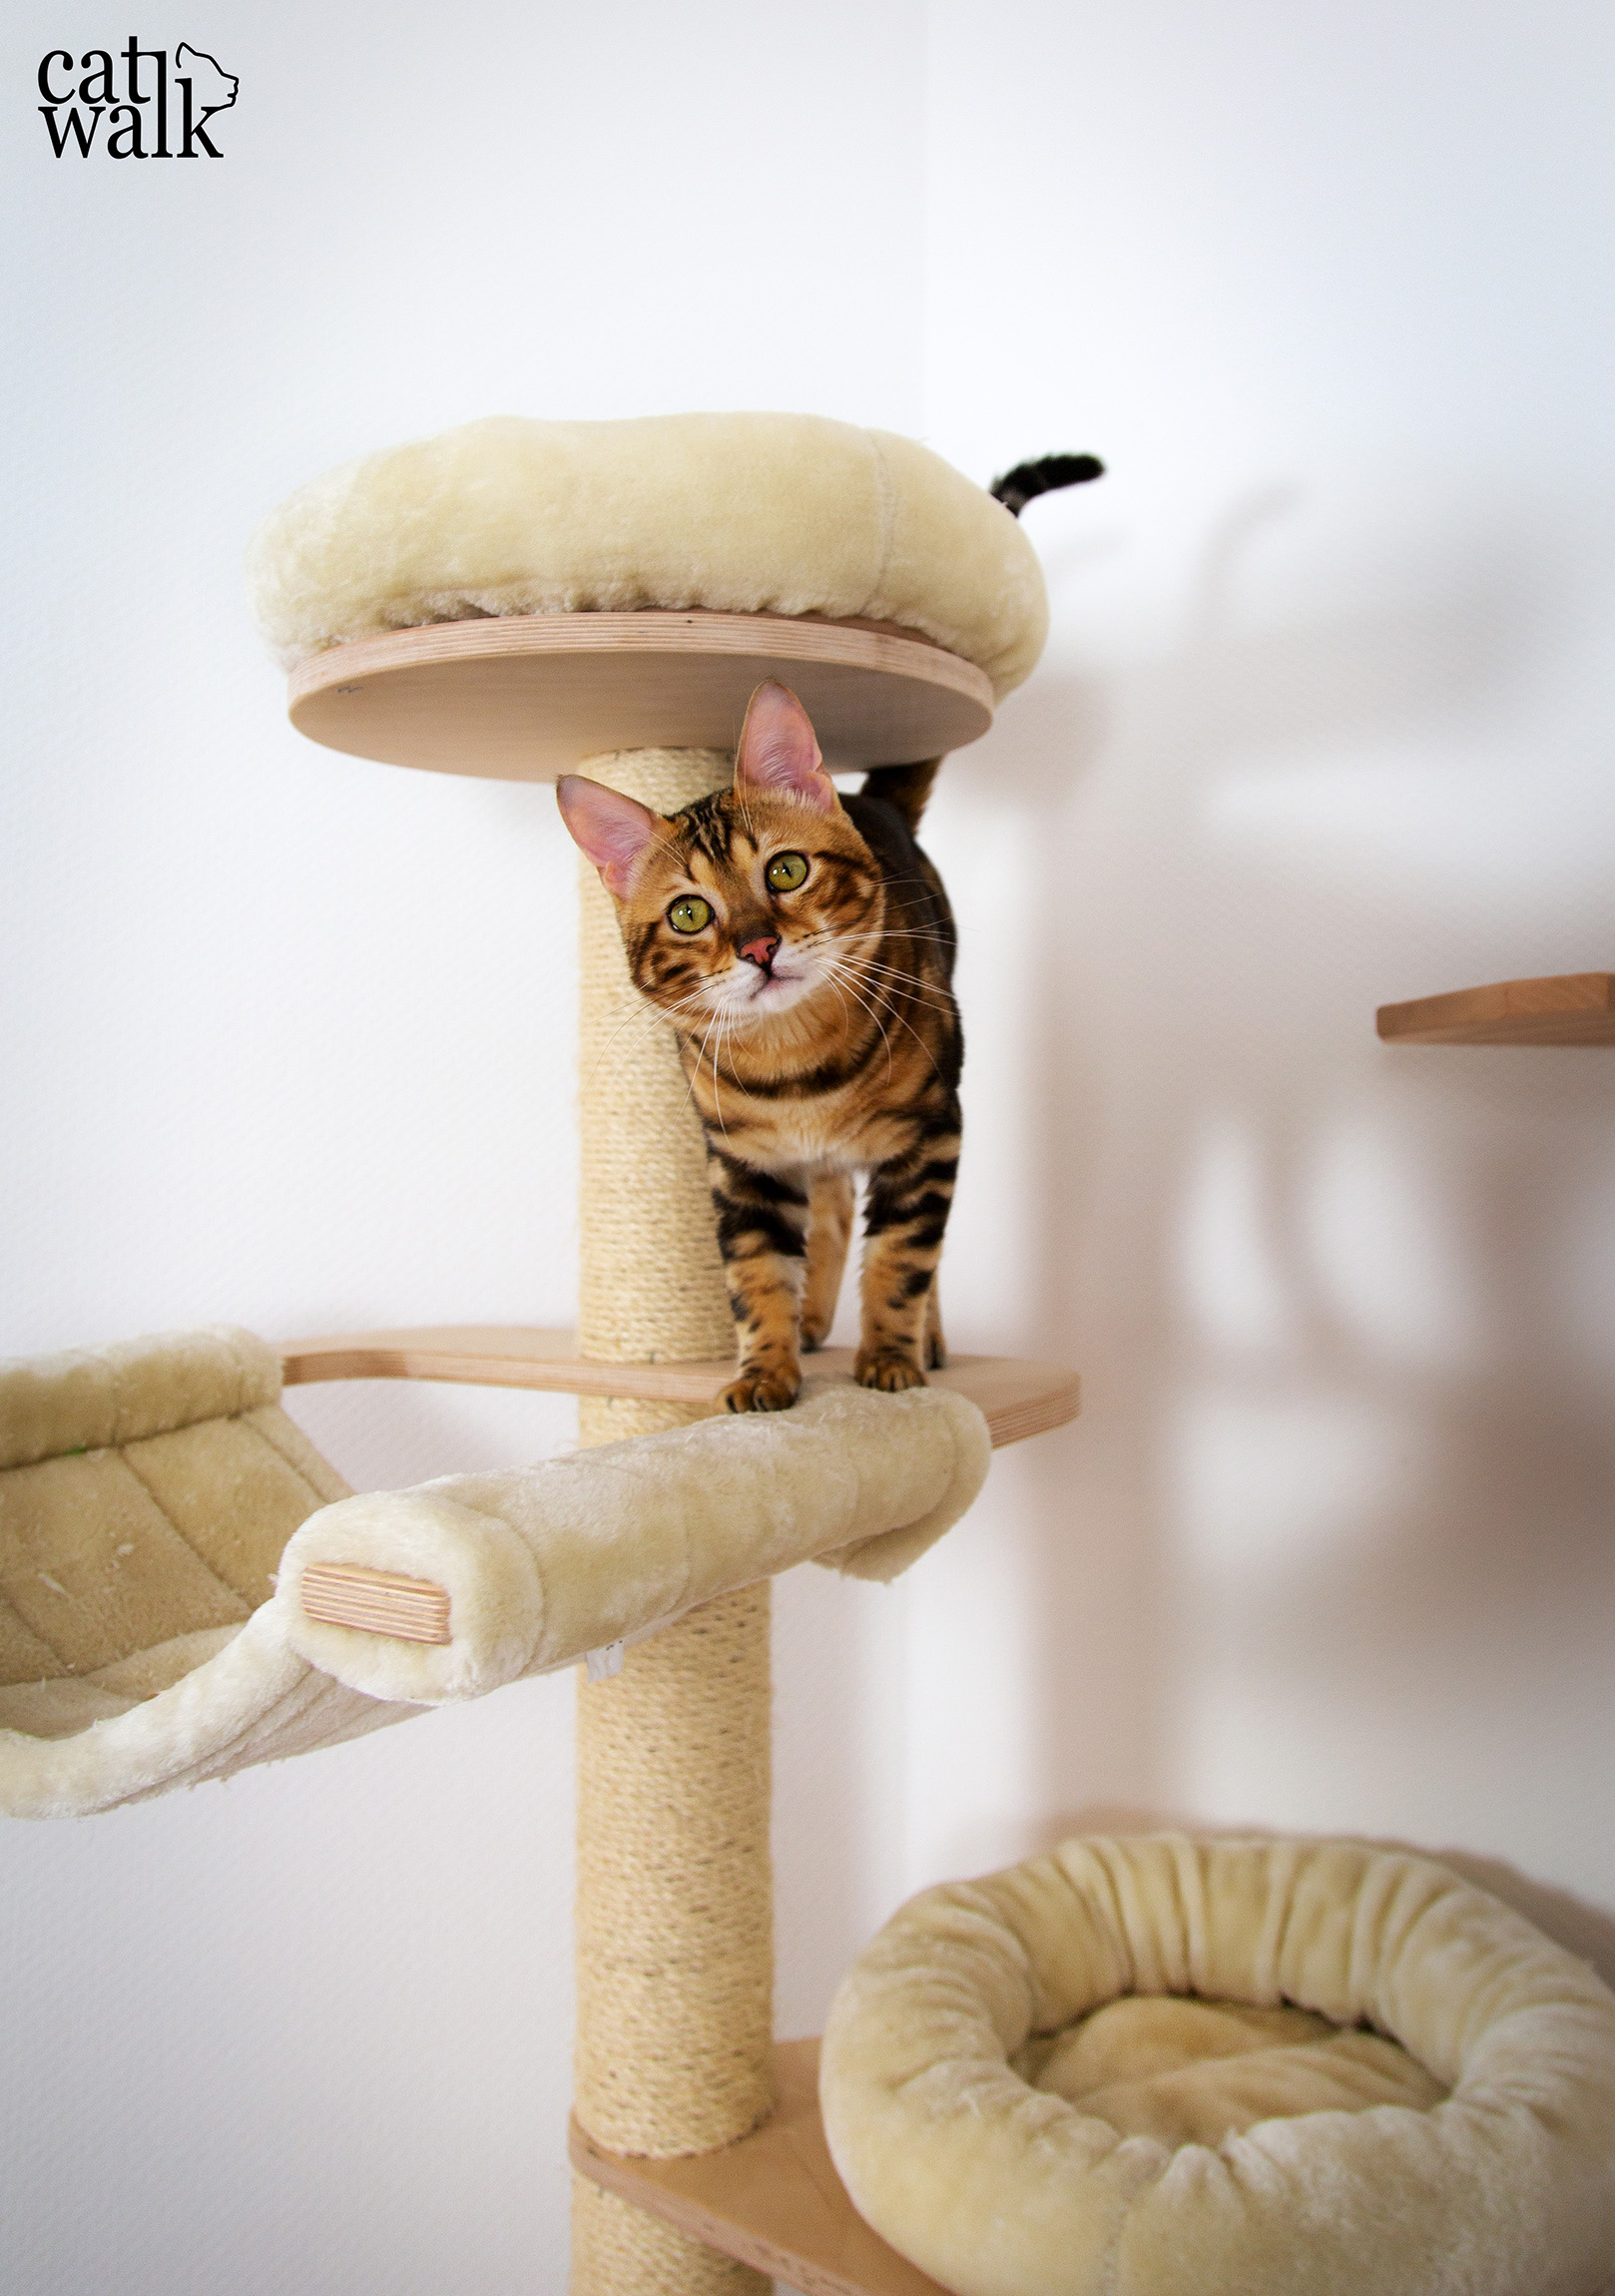 a Catwalk for our Bengal Kitten - Cat Walk | DIY